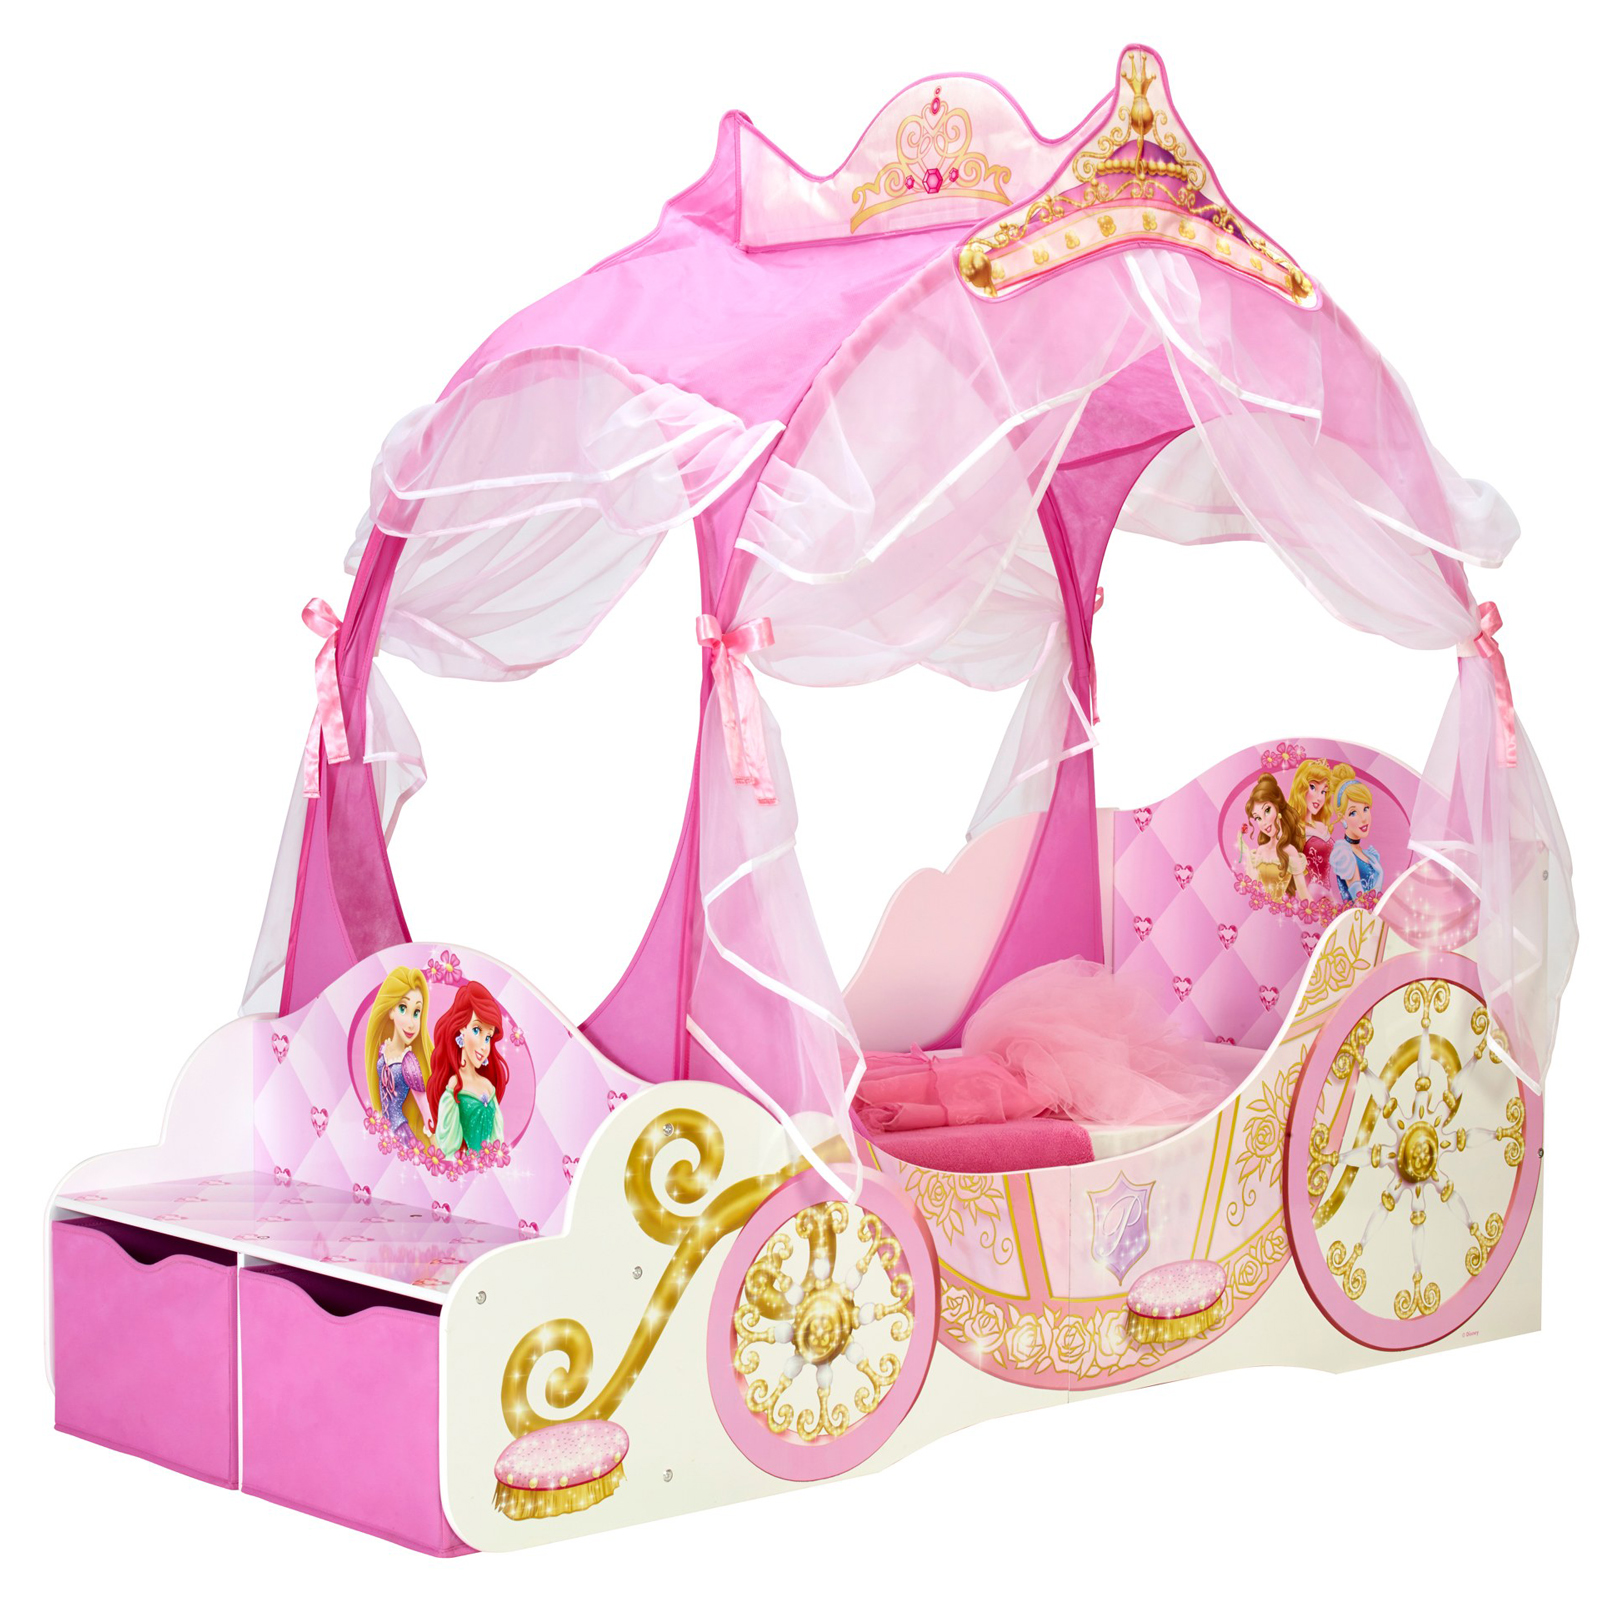 Disney Princess Carriage Toddler Bed Yes Furniture Online